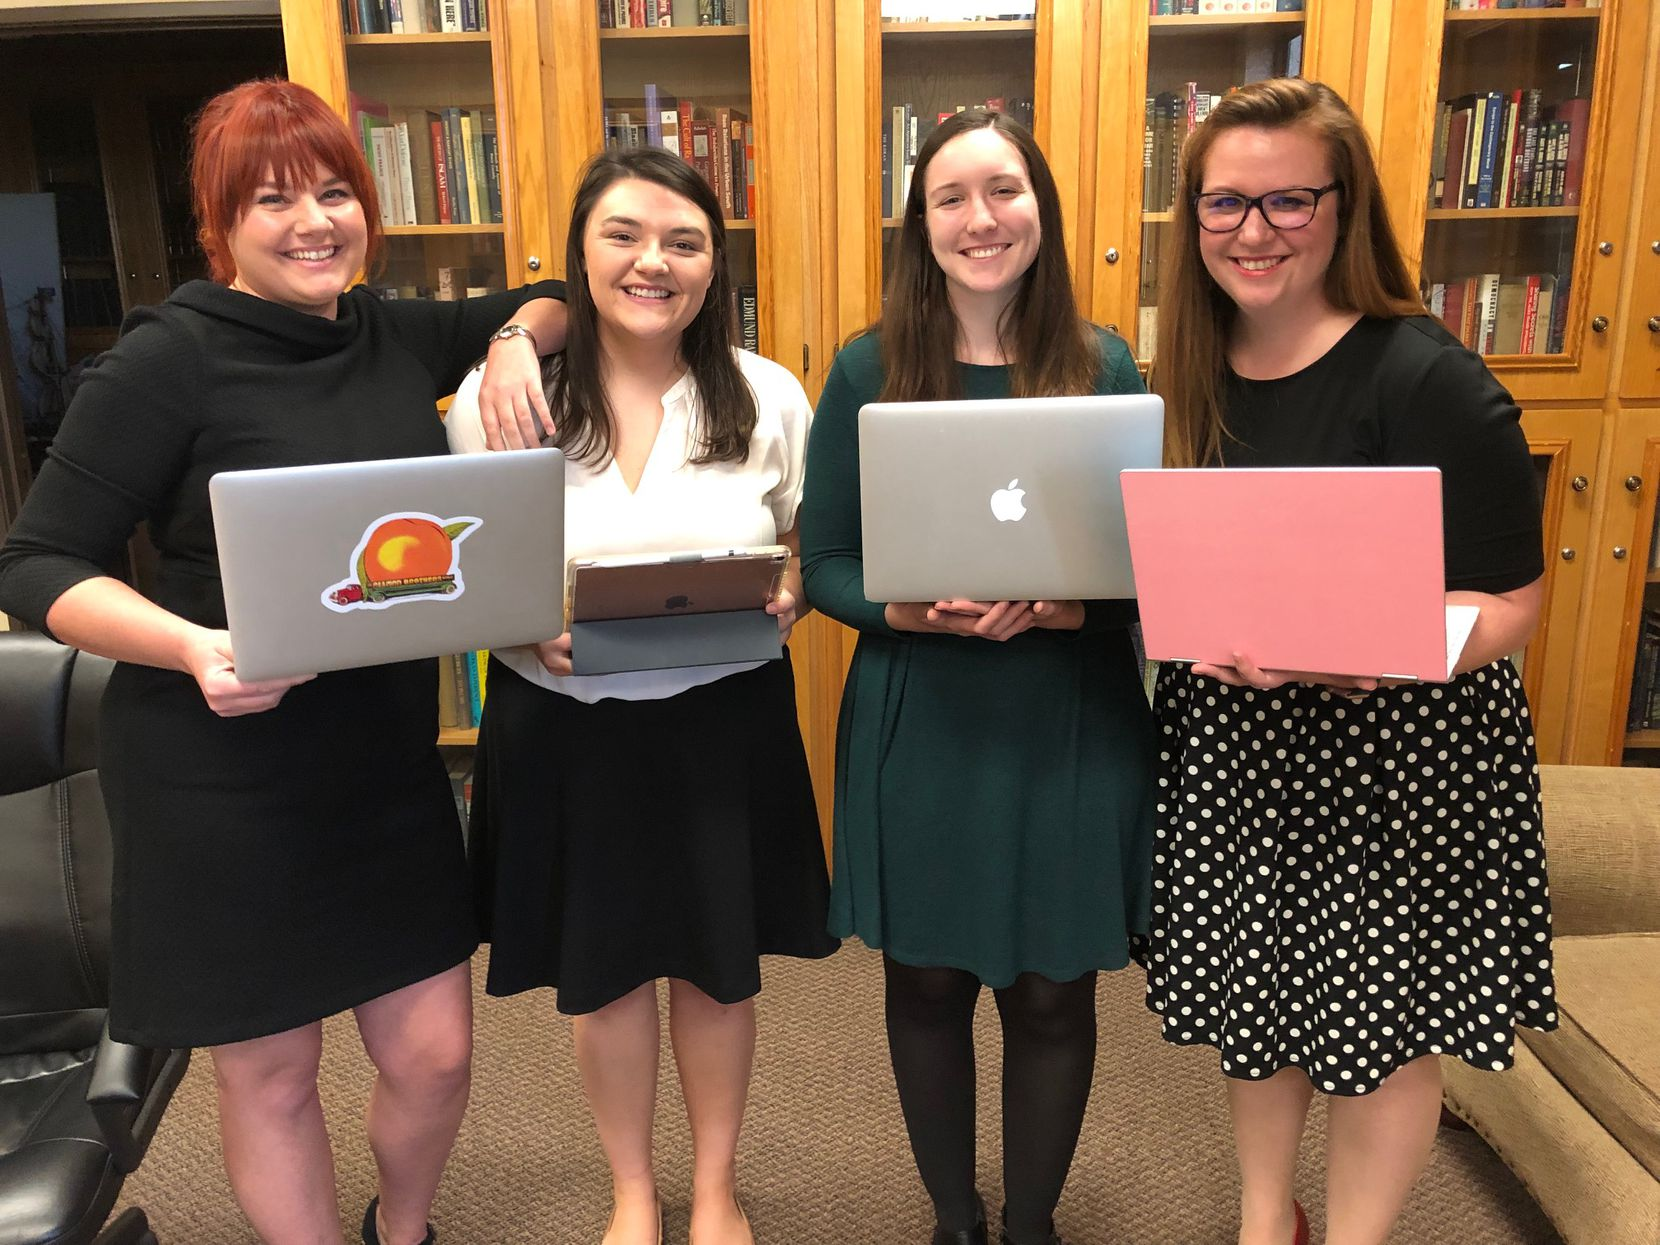 The four history students on a mission are Emily Bowles (from left), Hannah Stewart, Jessica Floyd and Micah Crittenden.